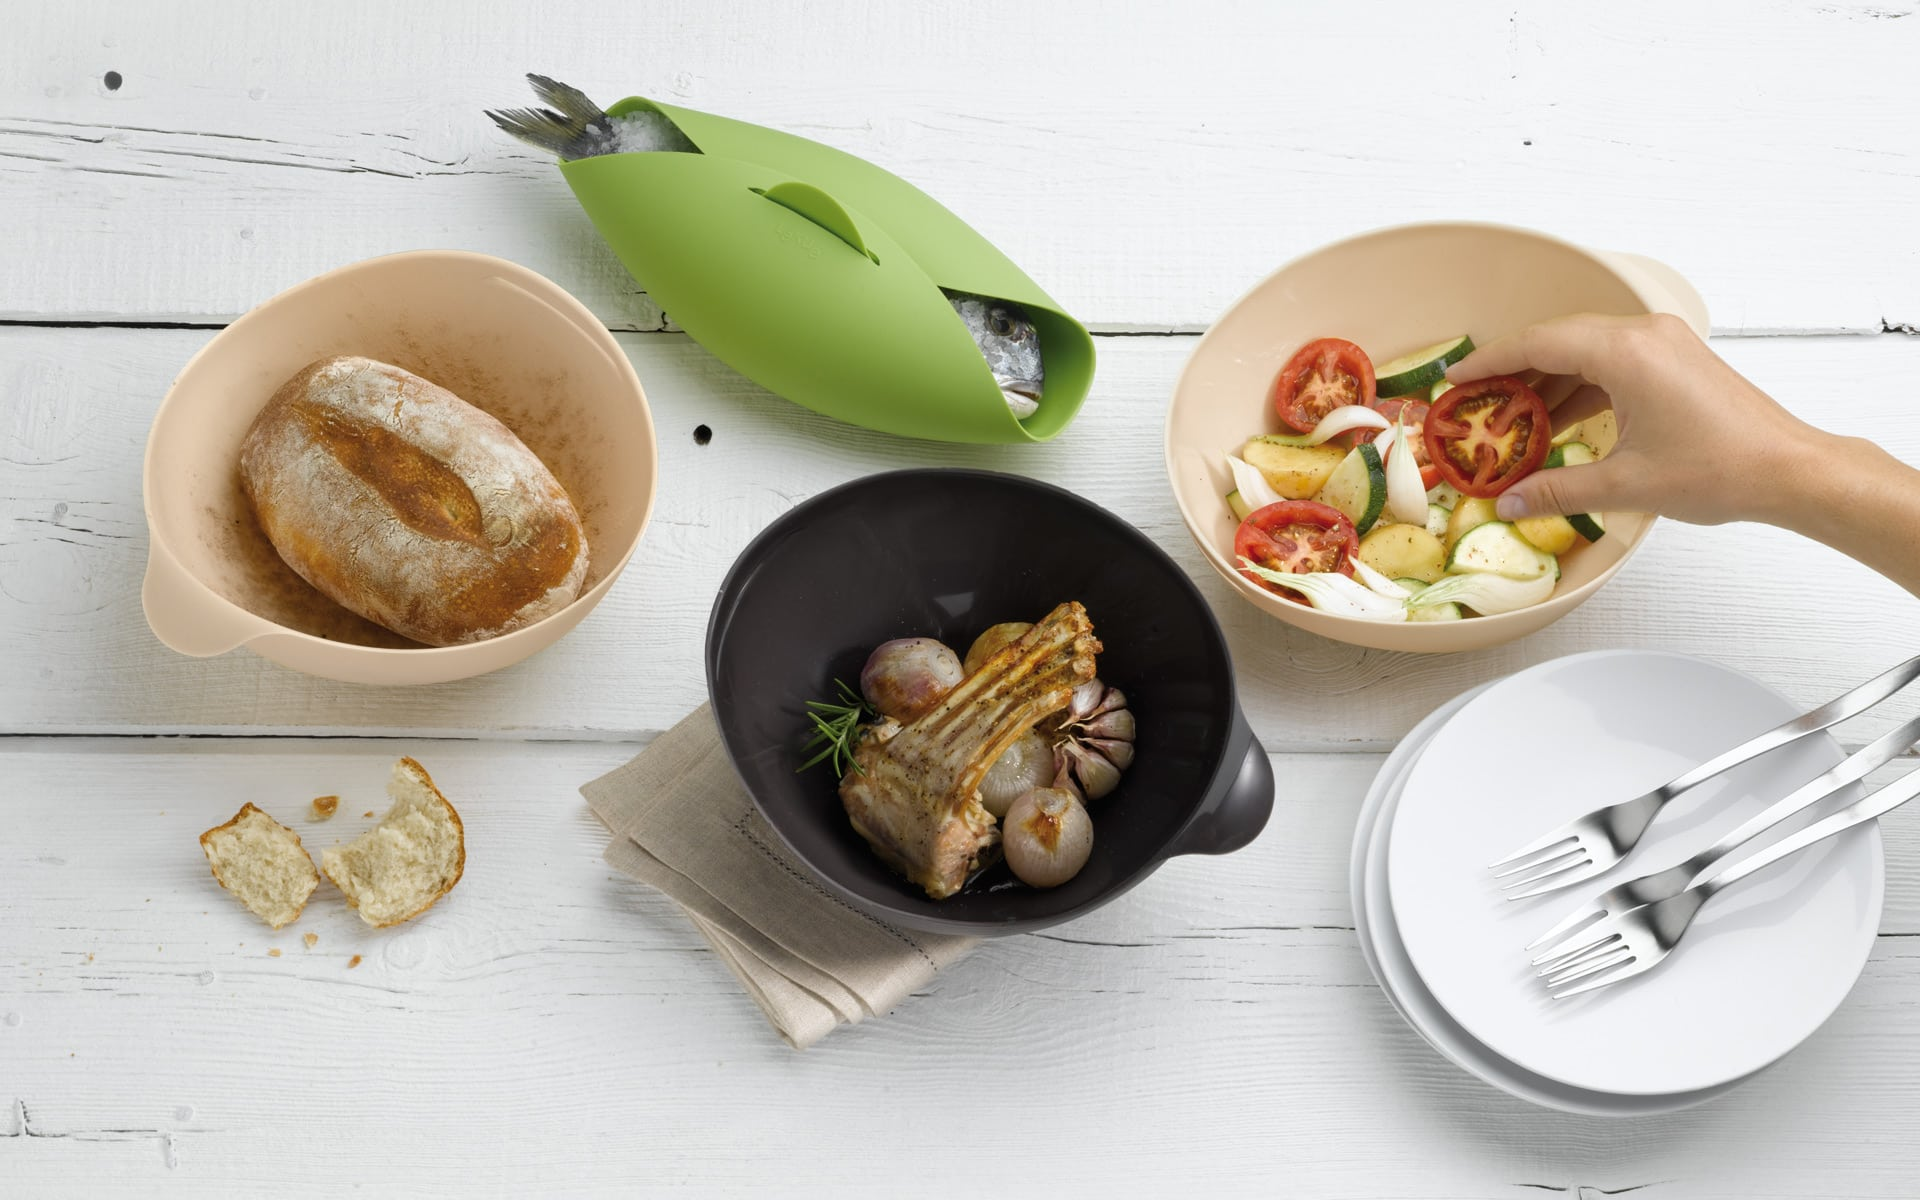 Table set with four silicone cooking bowls.